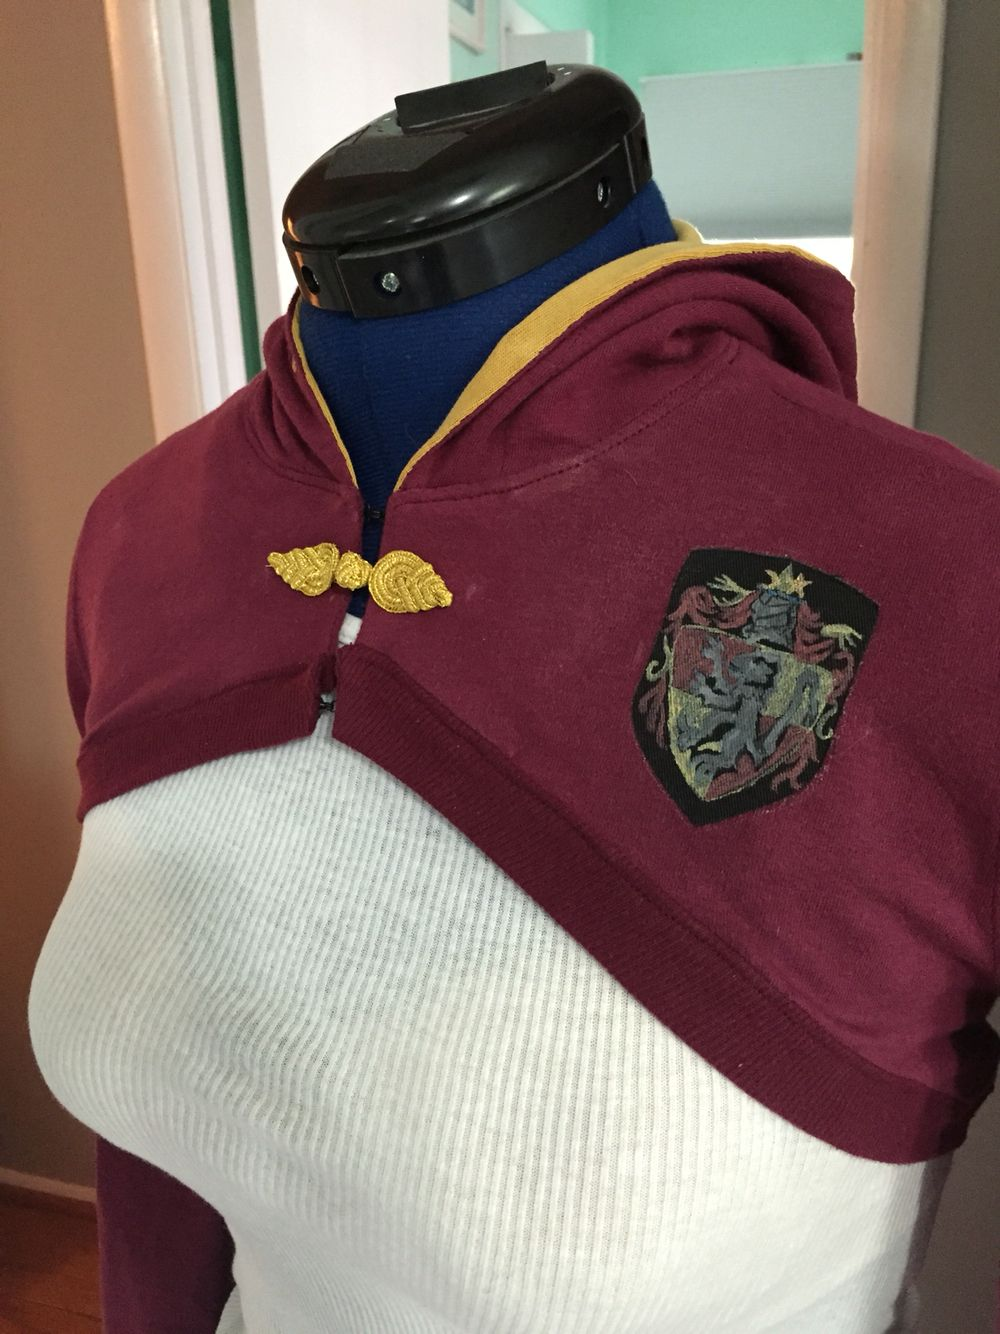 Gryffindor Quidditch shrug I made from free online hooded ...